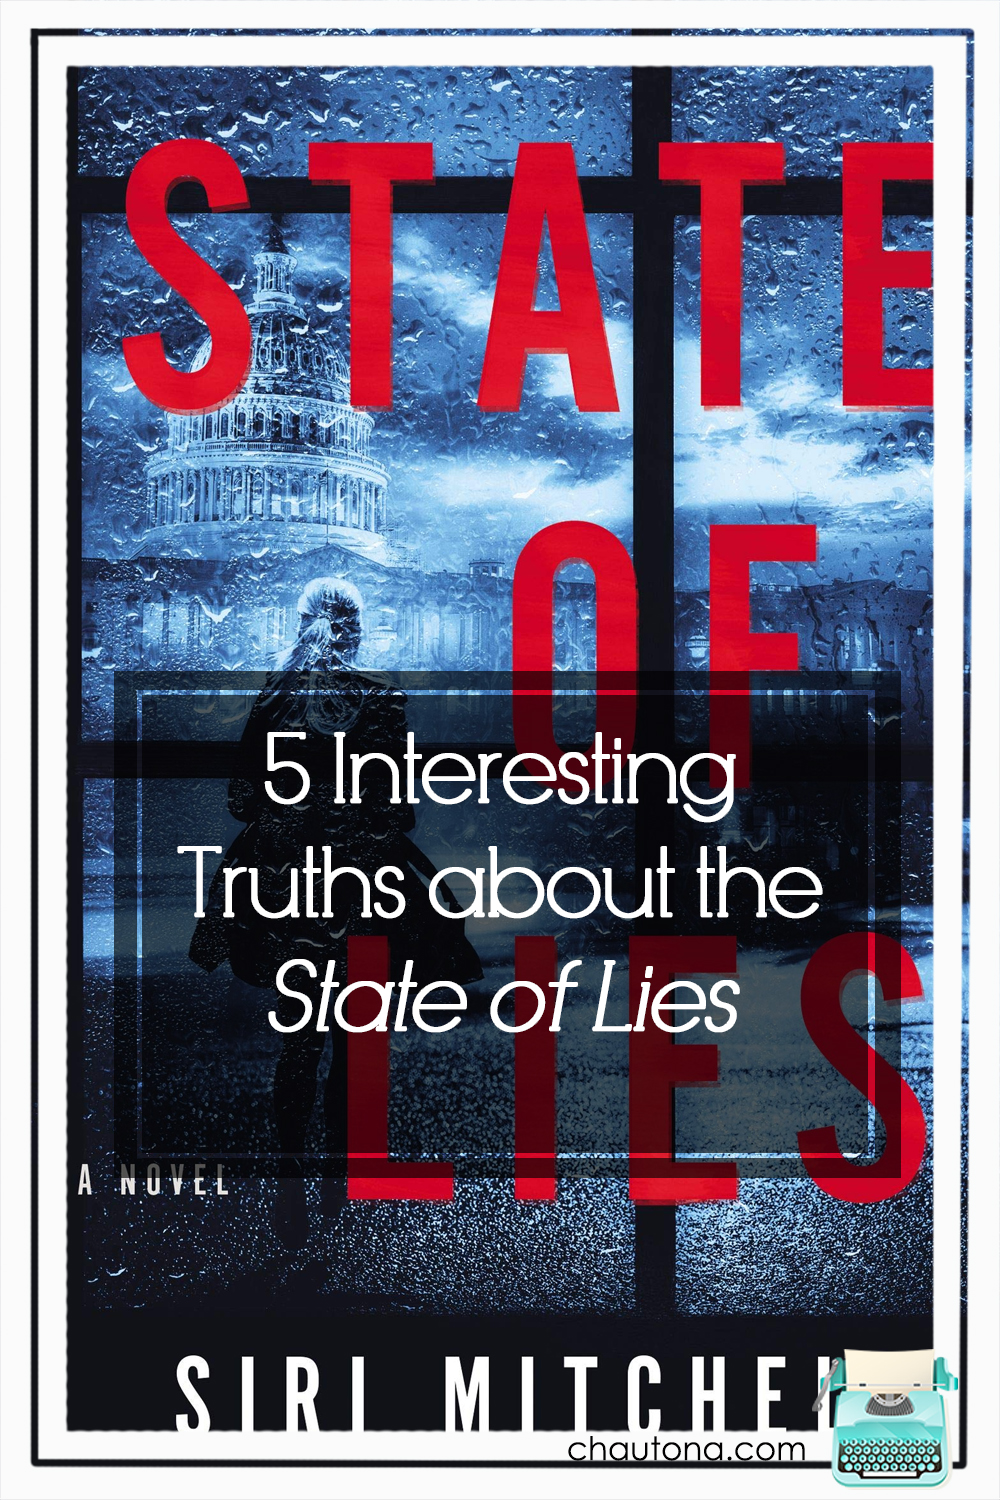 There's so much I could tell you about State of Lies, but then I might have to kill you. Bad jokes aside, this book is a crazy ride you won't want to miss. via @chautonahavig